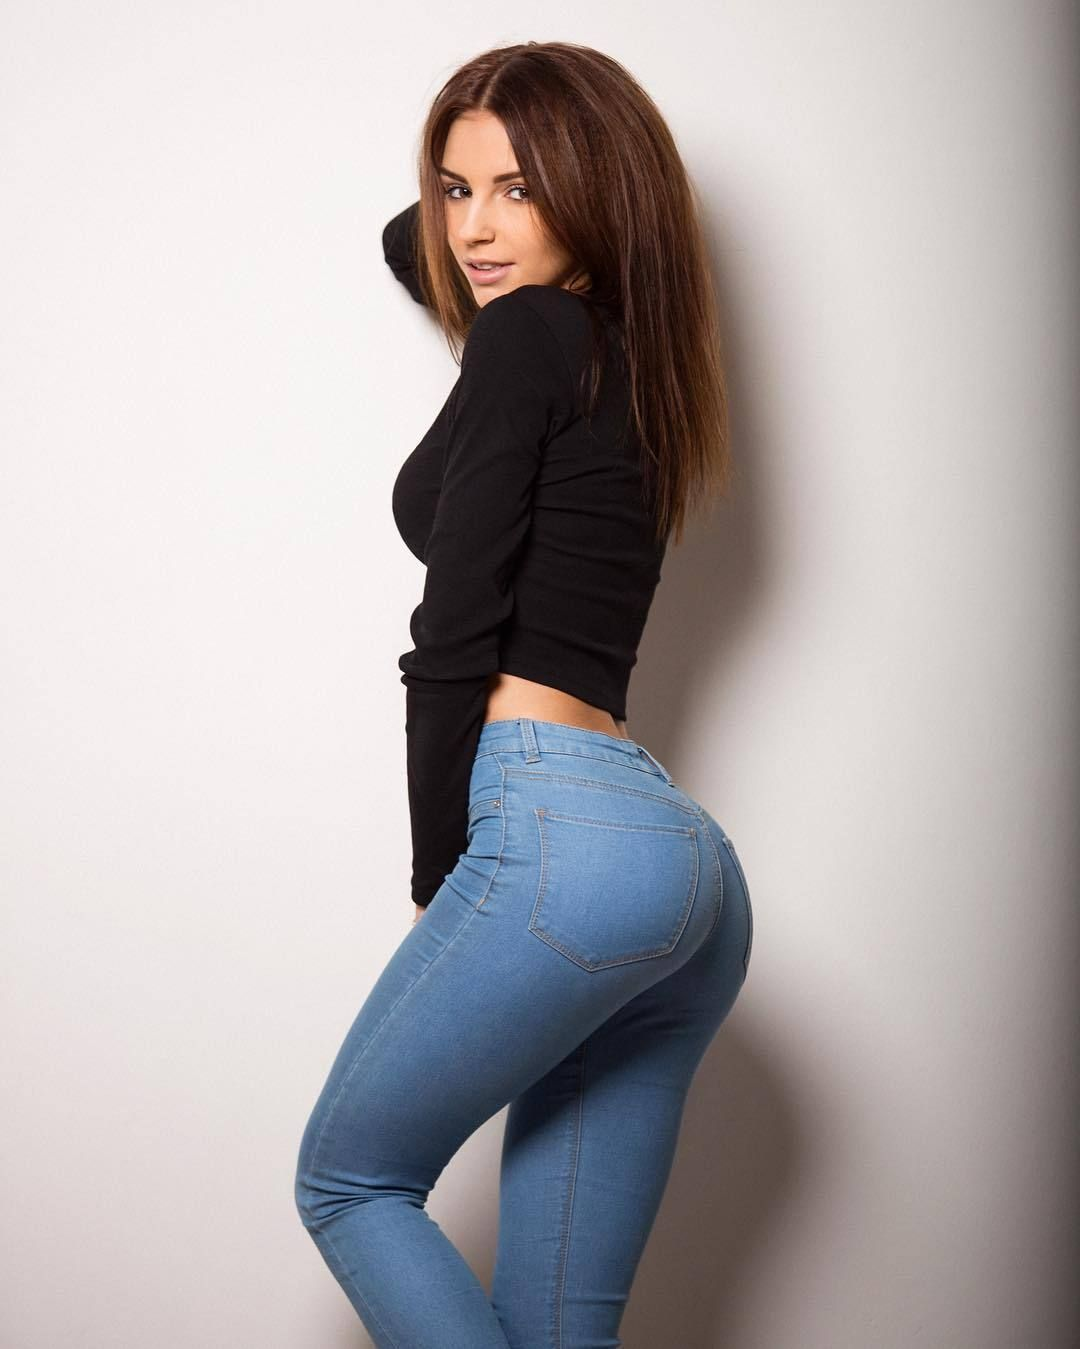 See and save as nice tits and tight jeans blonde porn pict